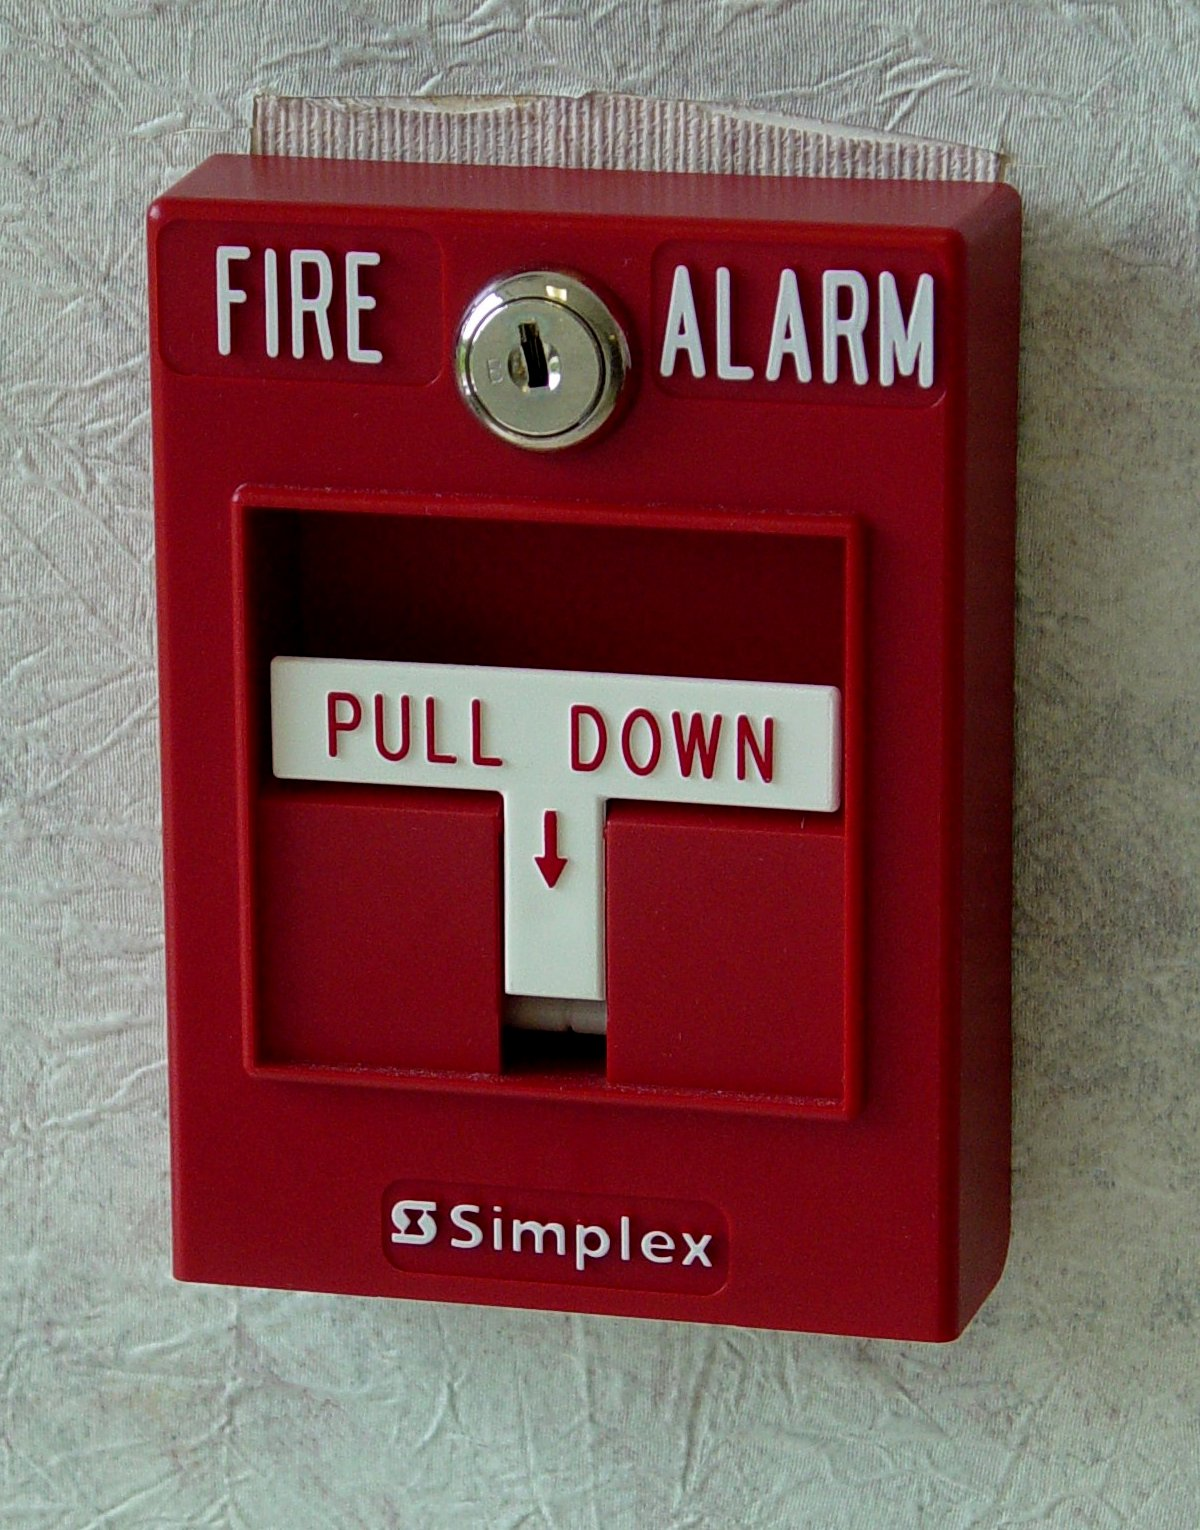 manual fire alarm activation wikipedia siren tornado on fire  tilt sensor wiring diagram